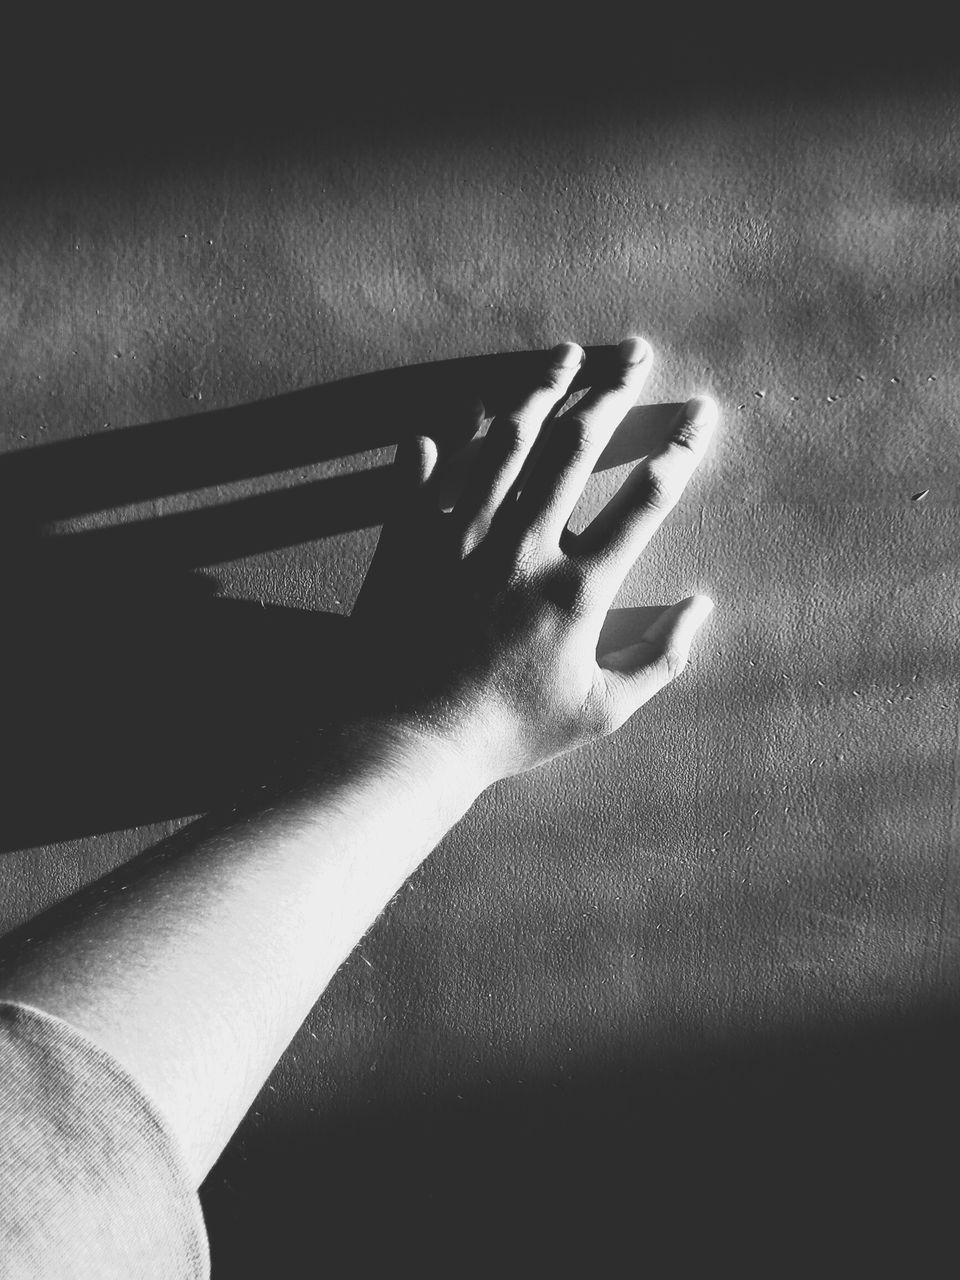 human hand, human body part, one person, real people, indoors, close-up, touching, shadow, day, people